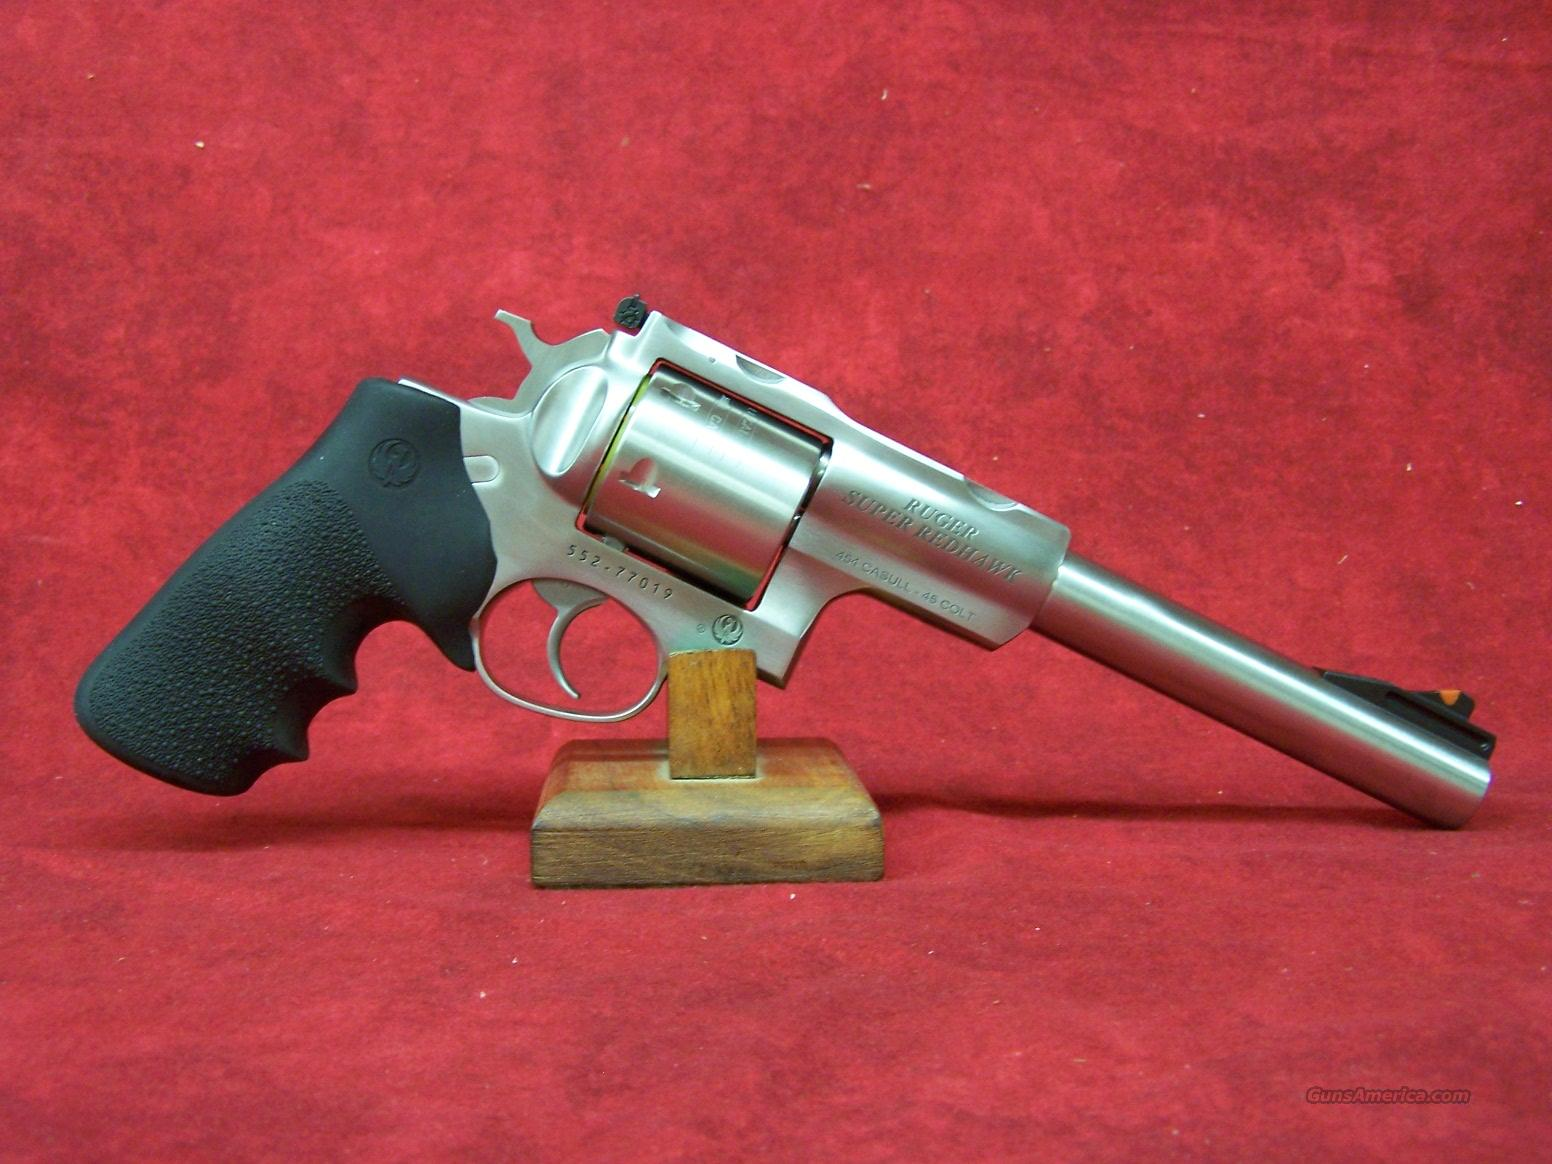 "Ruger Super Redhawk 454 Casull 7 1/2"" Barrel (05505)  Guns > Pistols > Ruger Double Action Revolver > Redhawk Type"